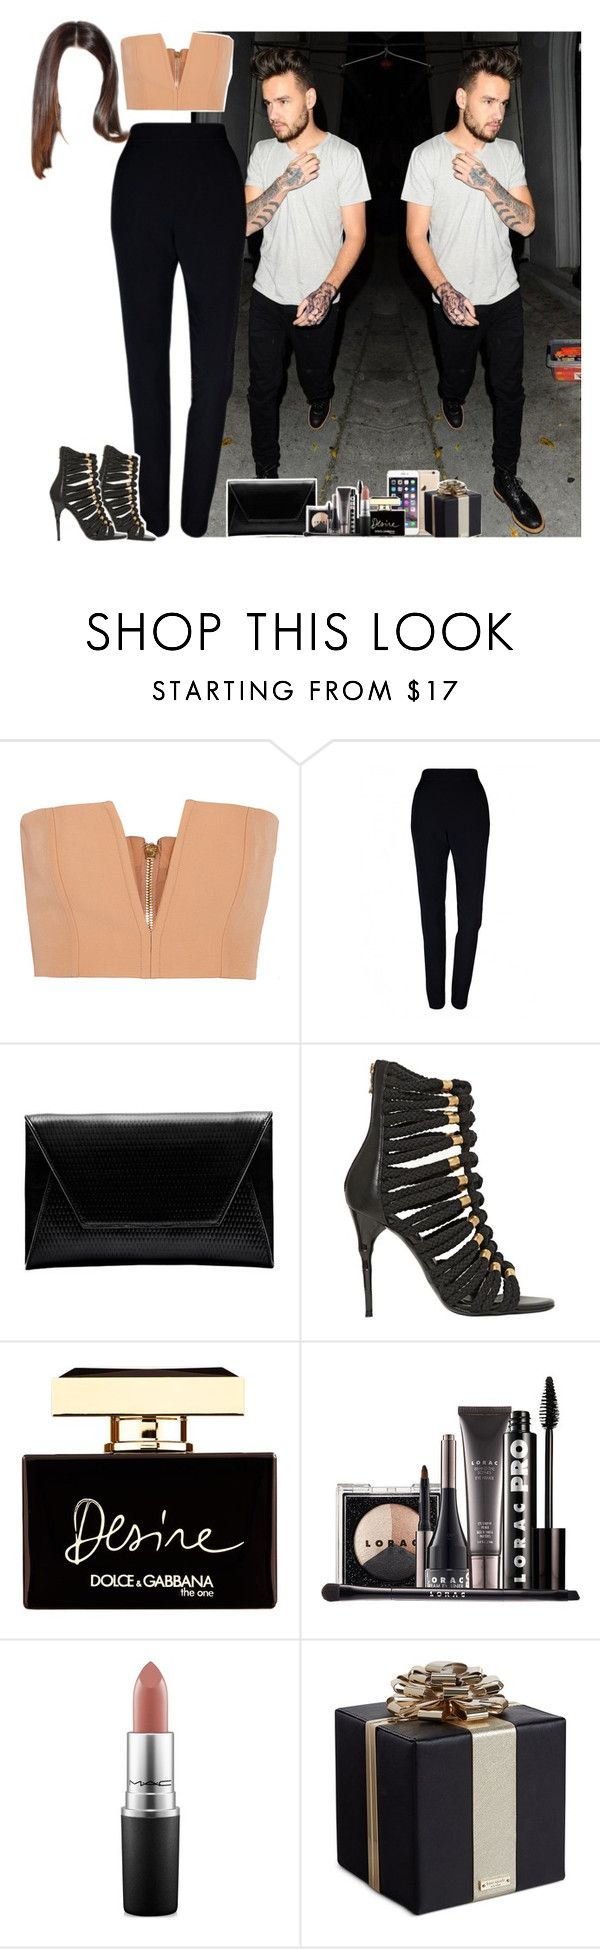 """""""Niall's birthday party with Liam"""" by fxrever-isnt-for-everyone ❤ liked on Polyvore featuring Payne, Balmain, Plakinger, Flynn, Dolce&Gabbana, LORAC, MAC Cosmetics, Kate Spade and LiamPayne"""